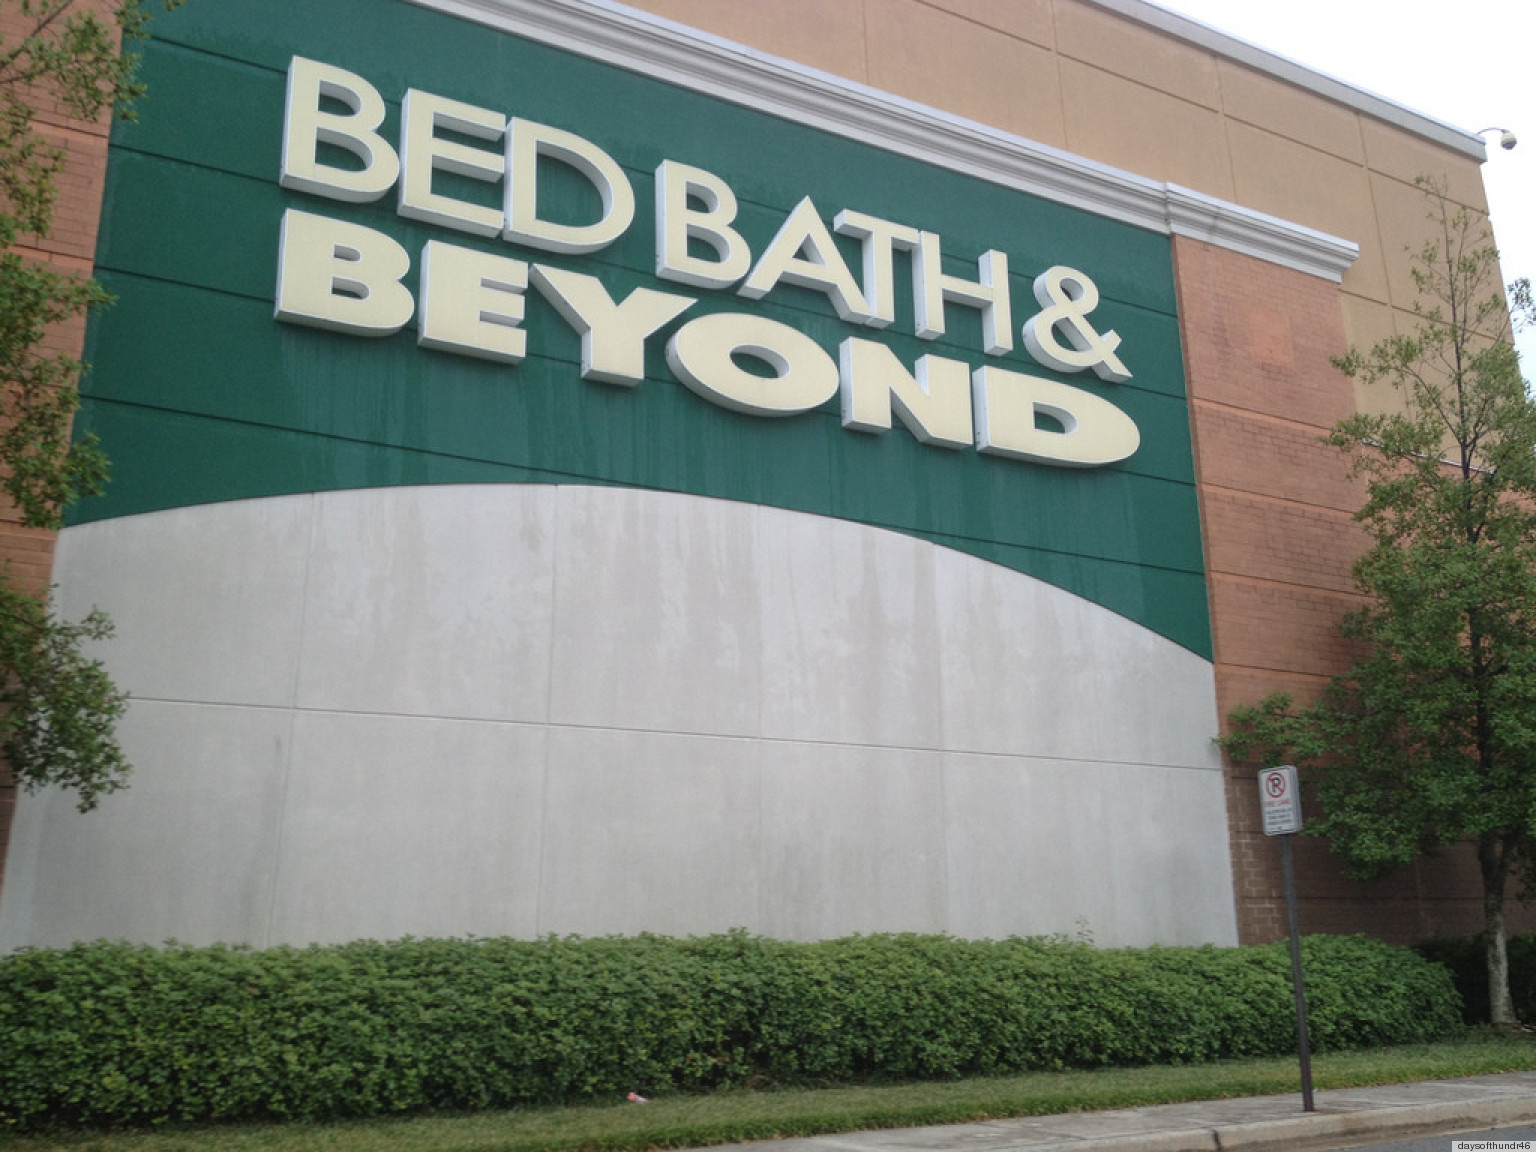 bed bath and beyond - photo #34